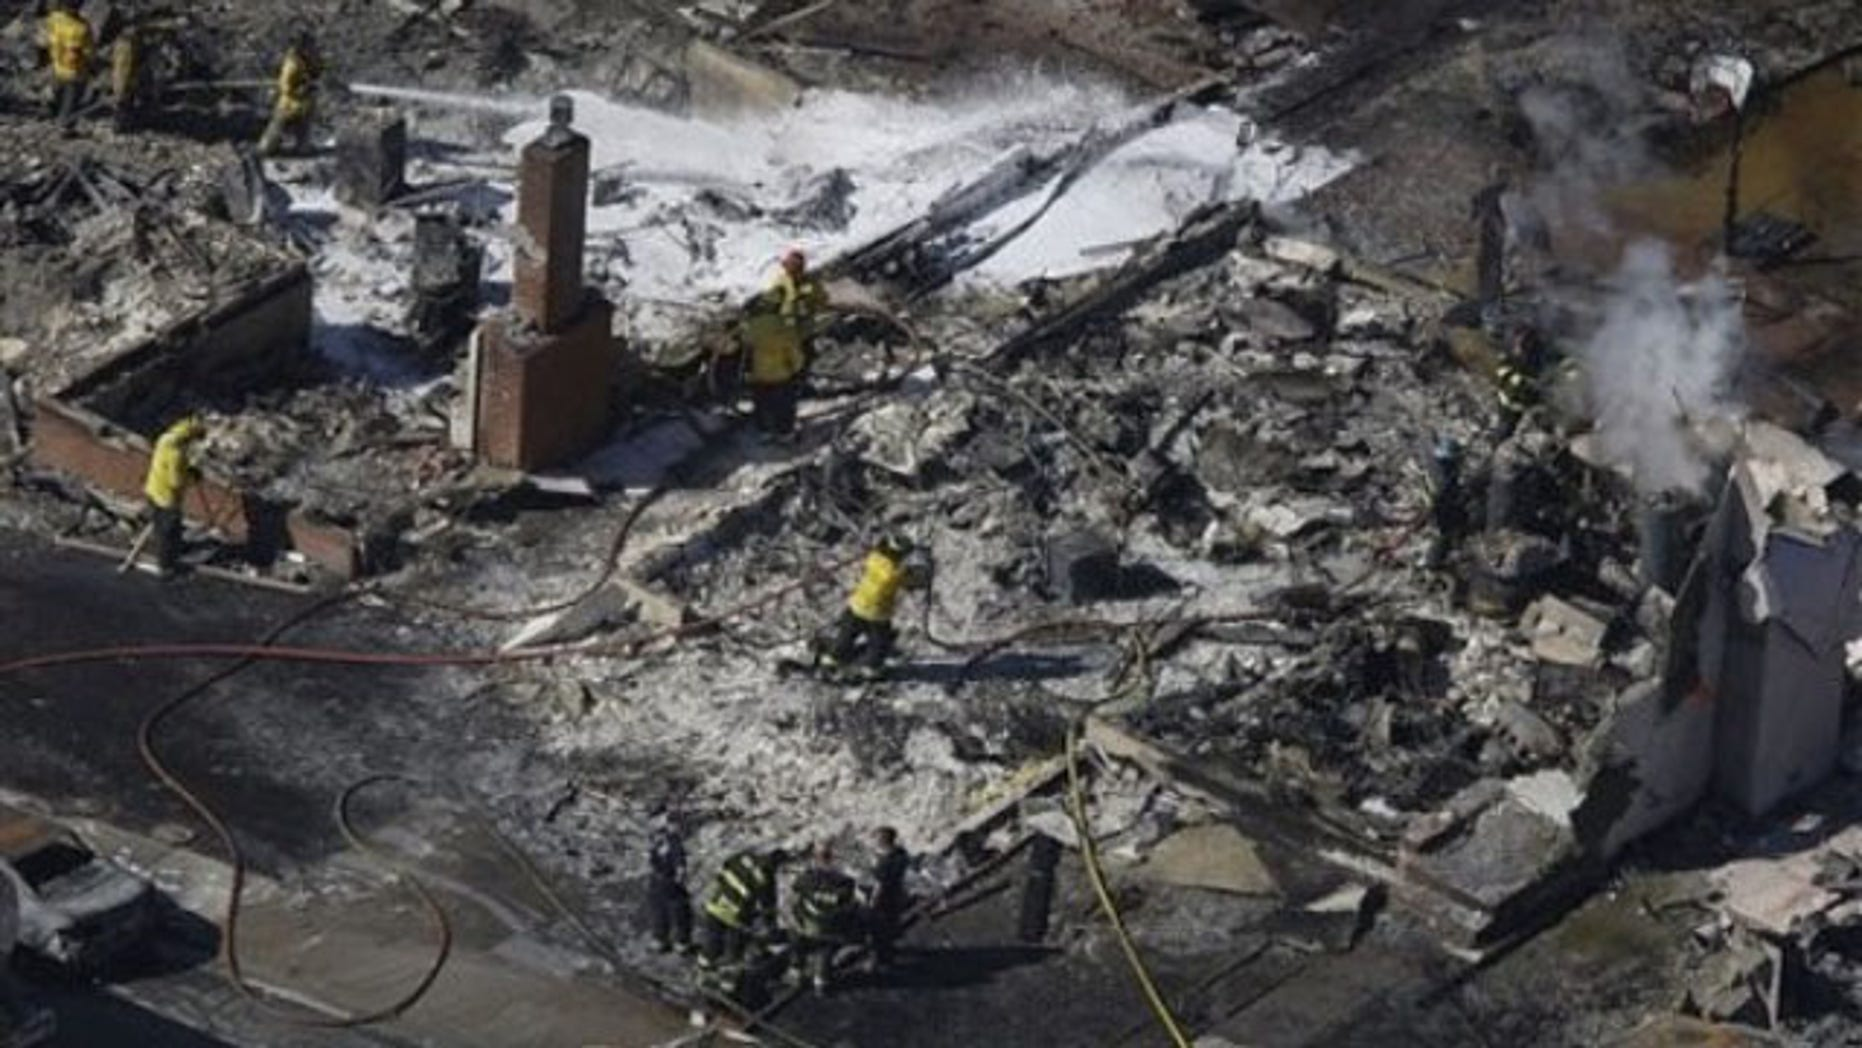 Sept. 10: Firemen work on the remains of a home damaged by a massive fire in a mostly residential neighborhood in San Bruno, Calif. (AP).